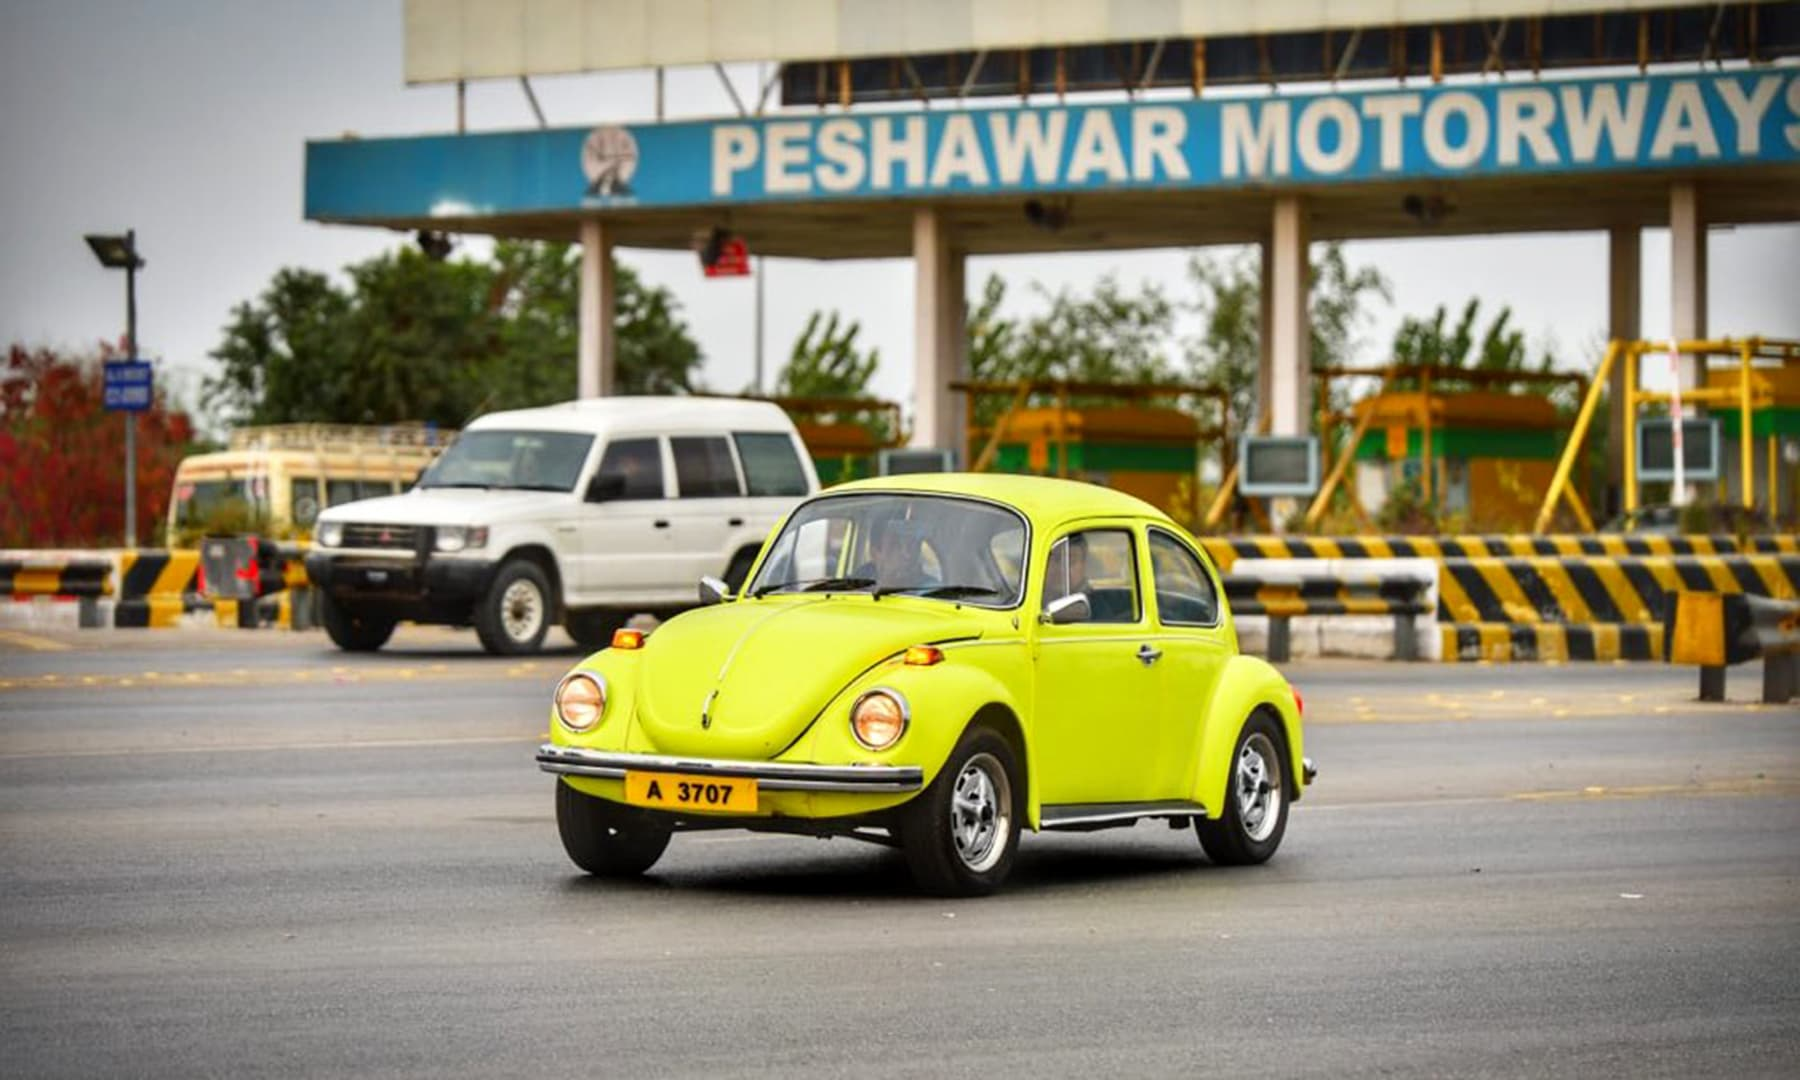 A brightly-coloured Volkswagen seen on the Peshawar Motorway. —@PTIofficial